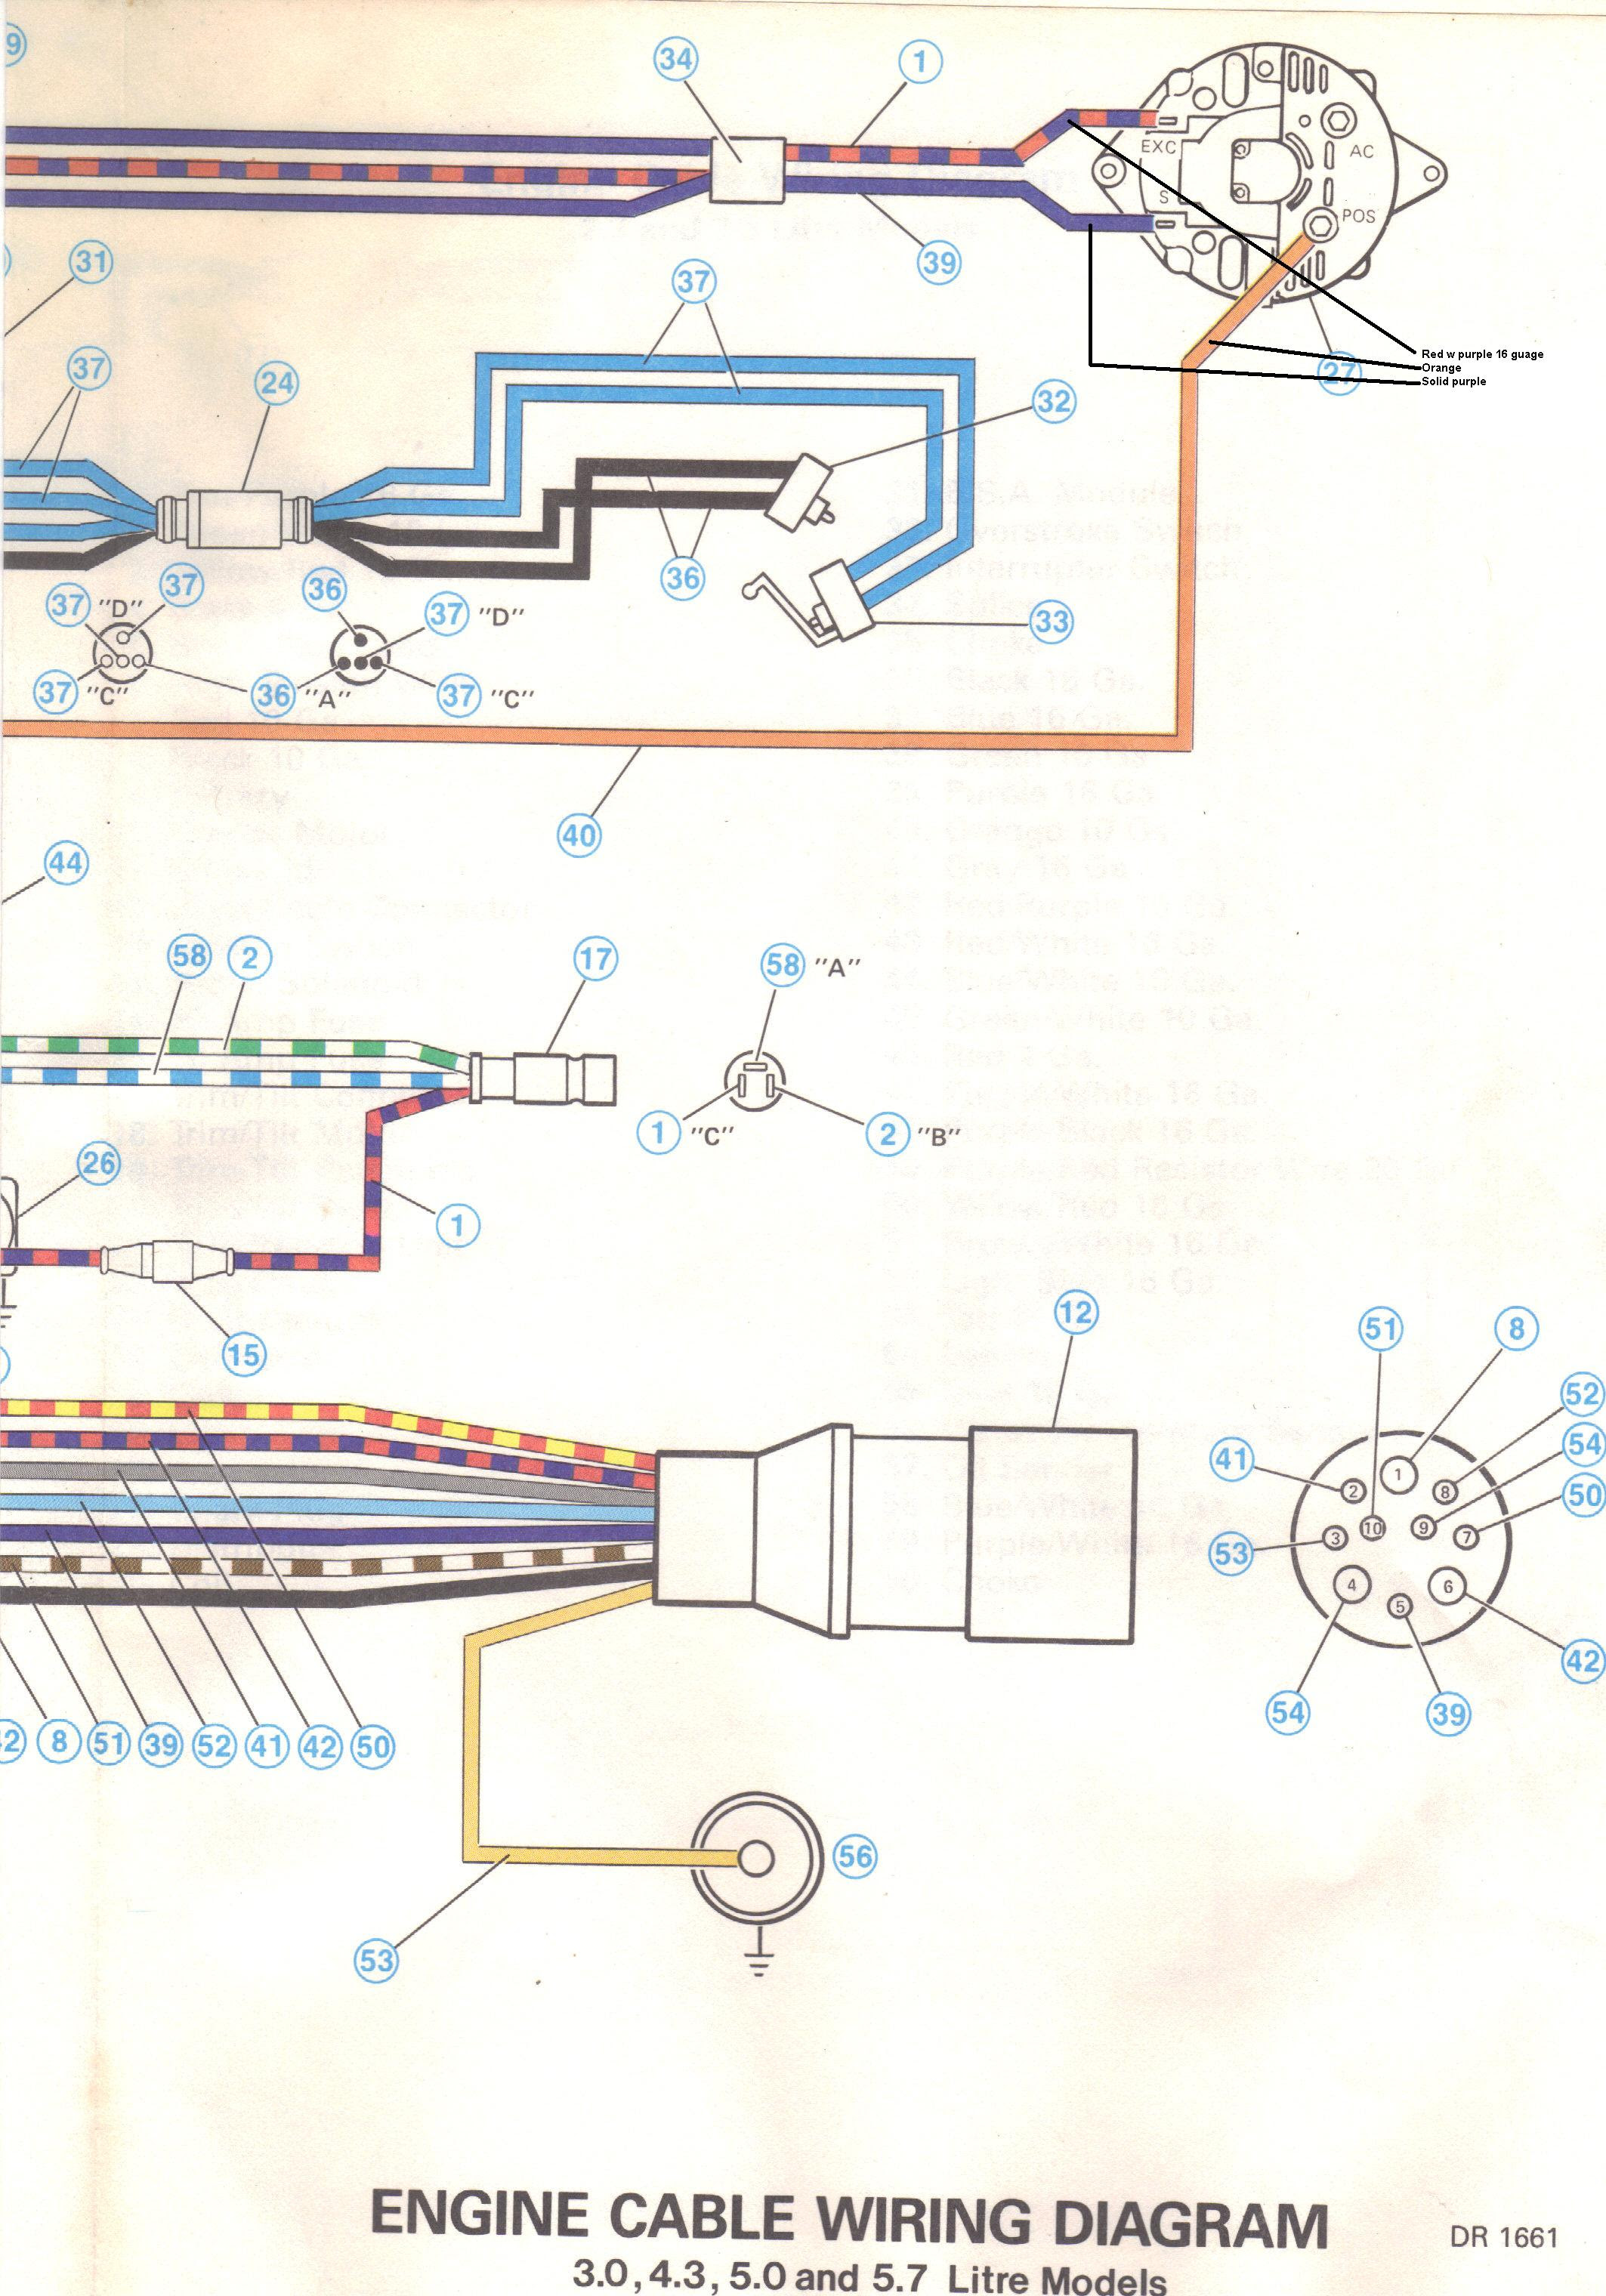 Diagram 1976 Omc Starter Wiring Diagram Full Version Hd Quality Wiring Diagram Diagraminc Berton Photographe Fr